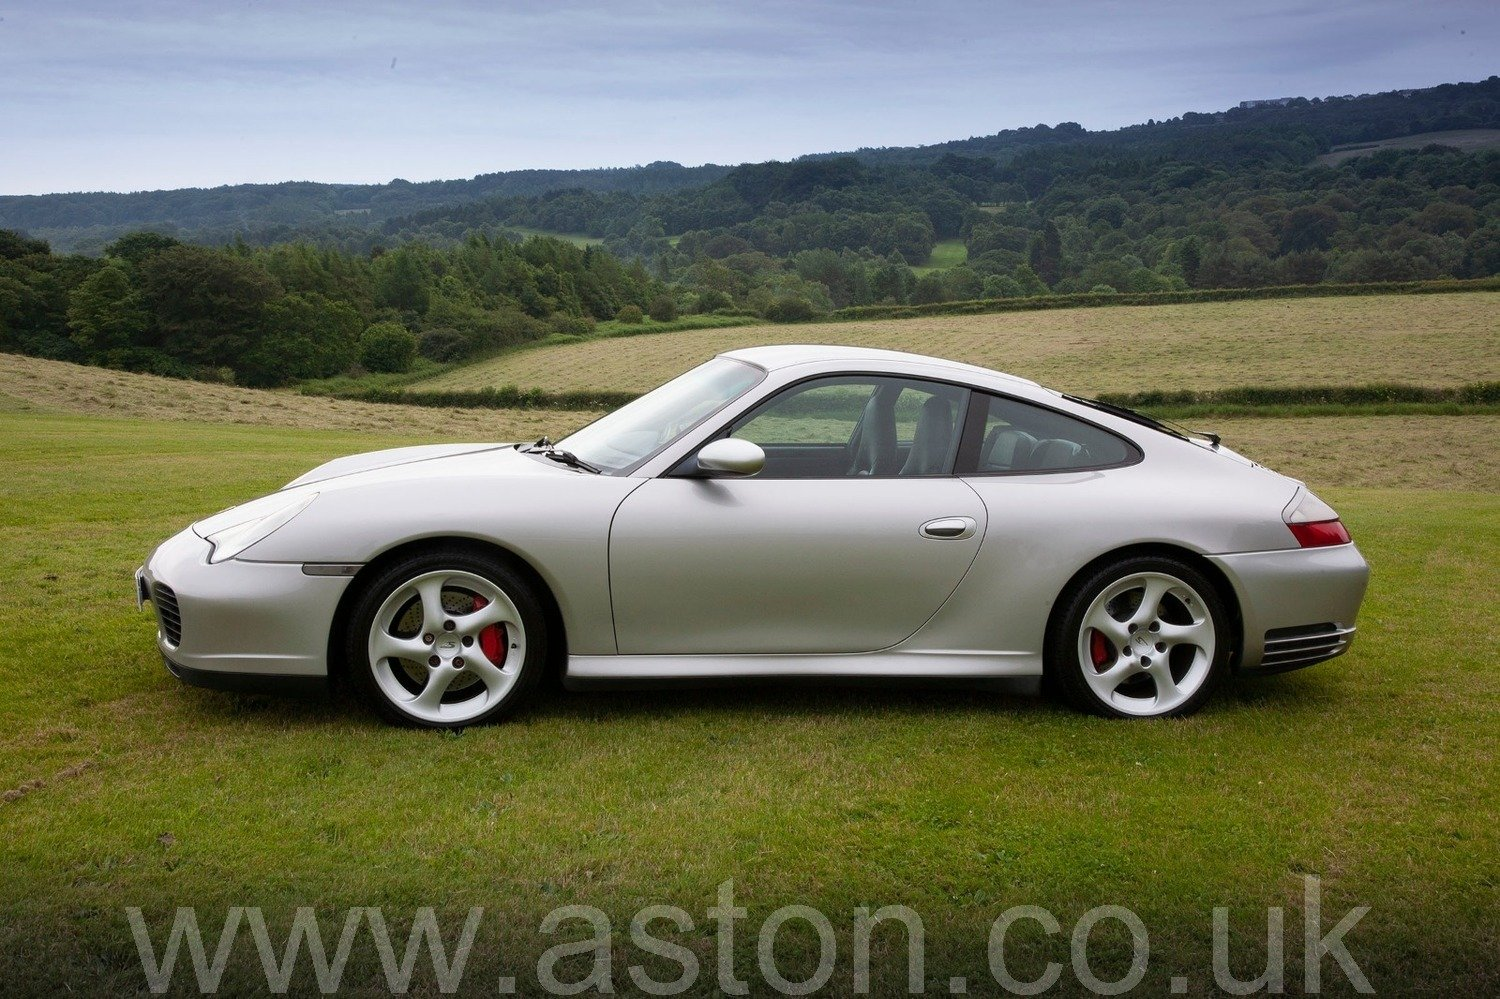 2003 Porsche 911 C4S Tiptronic For Sale (picture 4 of 6)